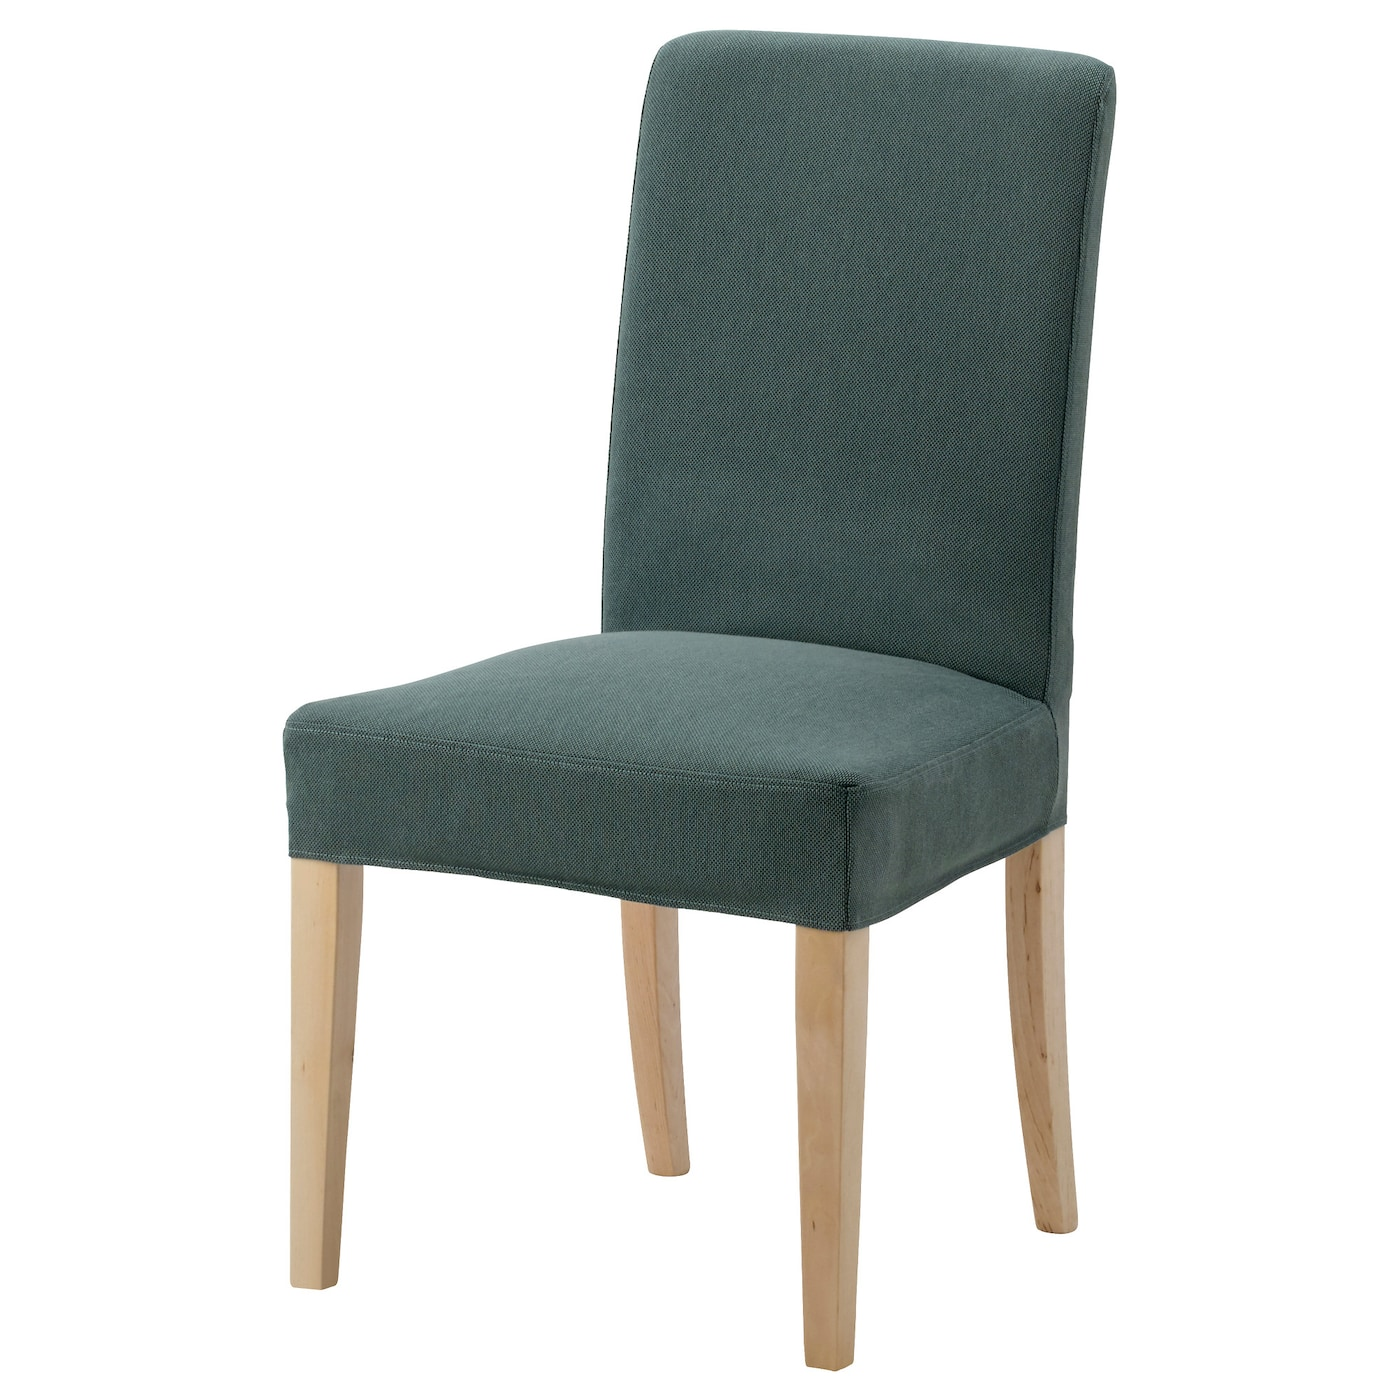 henriksdal chair birch finnsta turquoise ikea. Black Bedroom Furniture Sets. Home Design Ideas